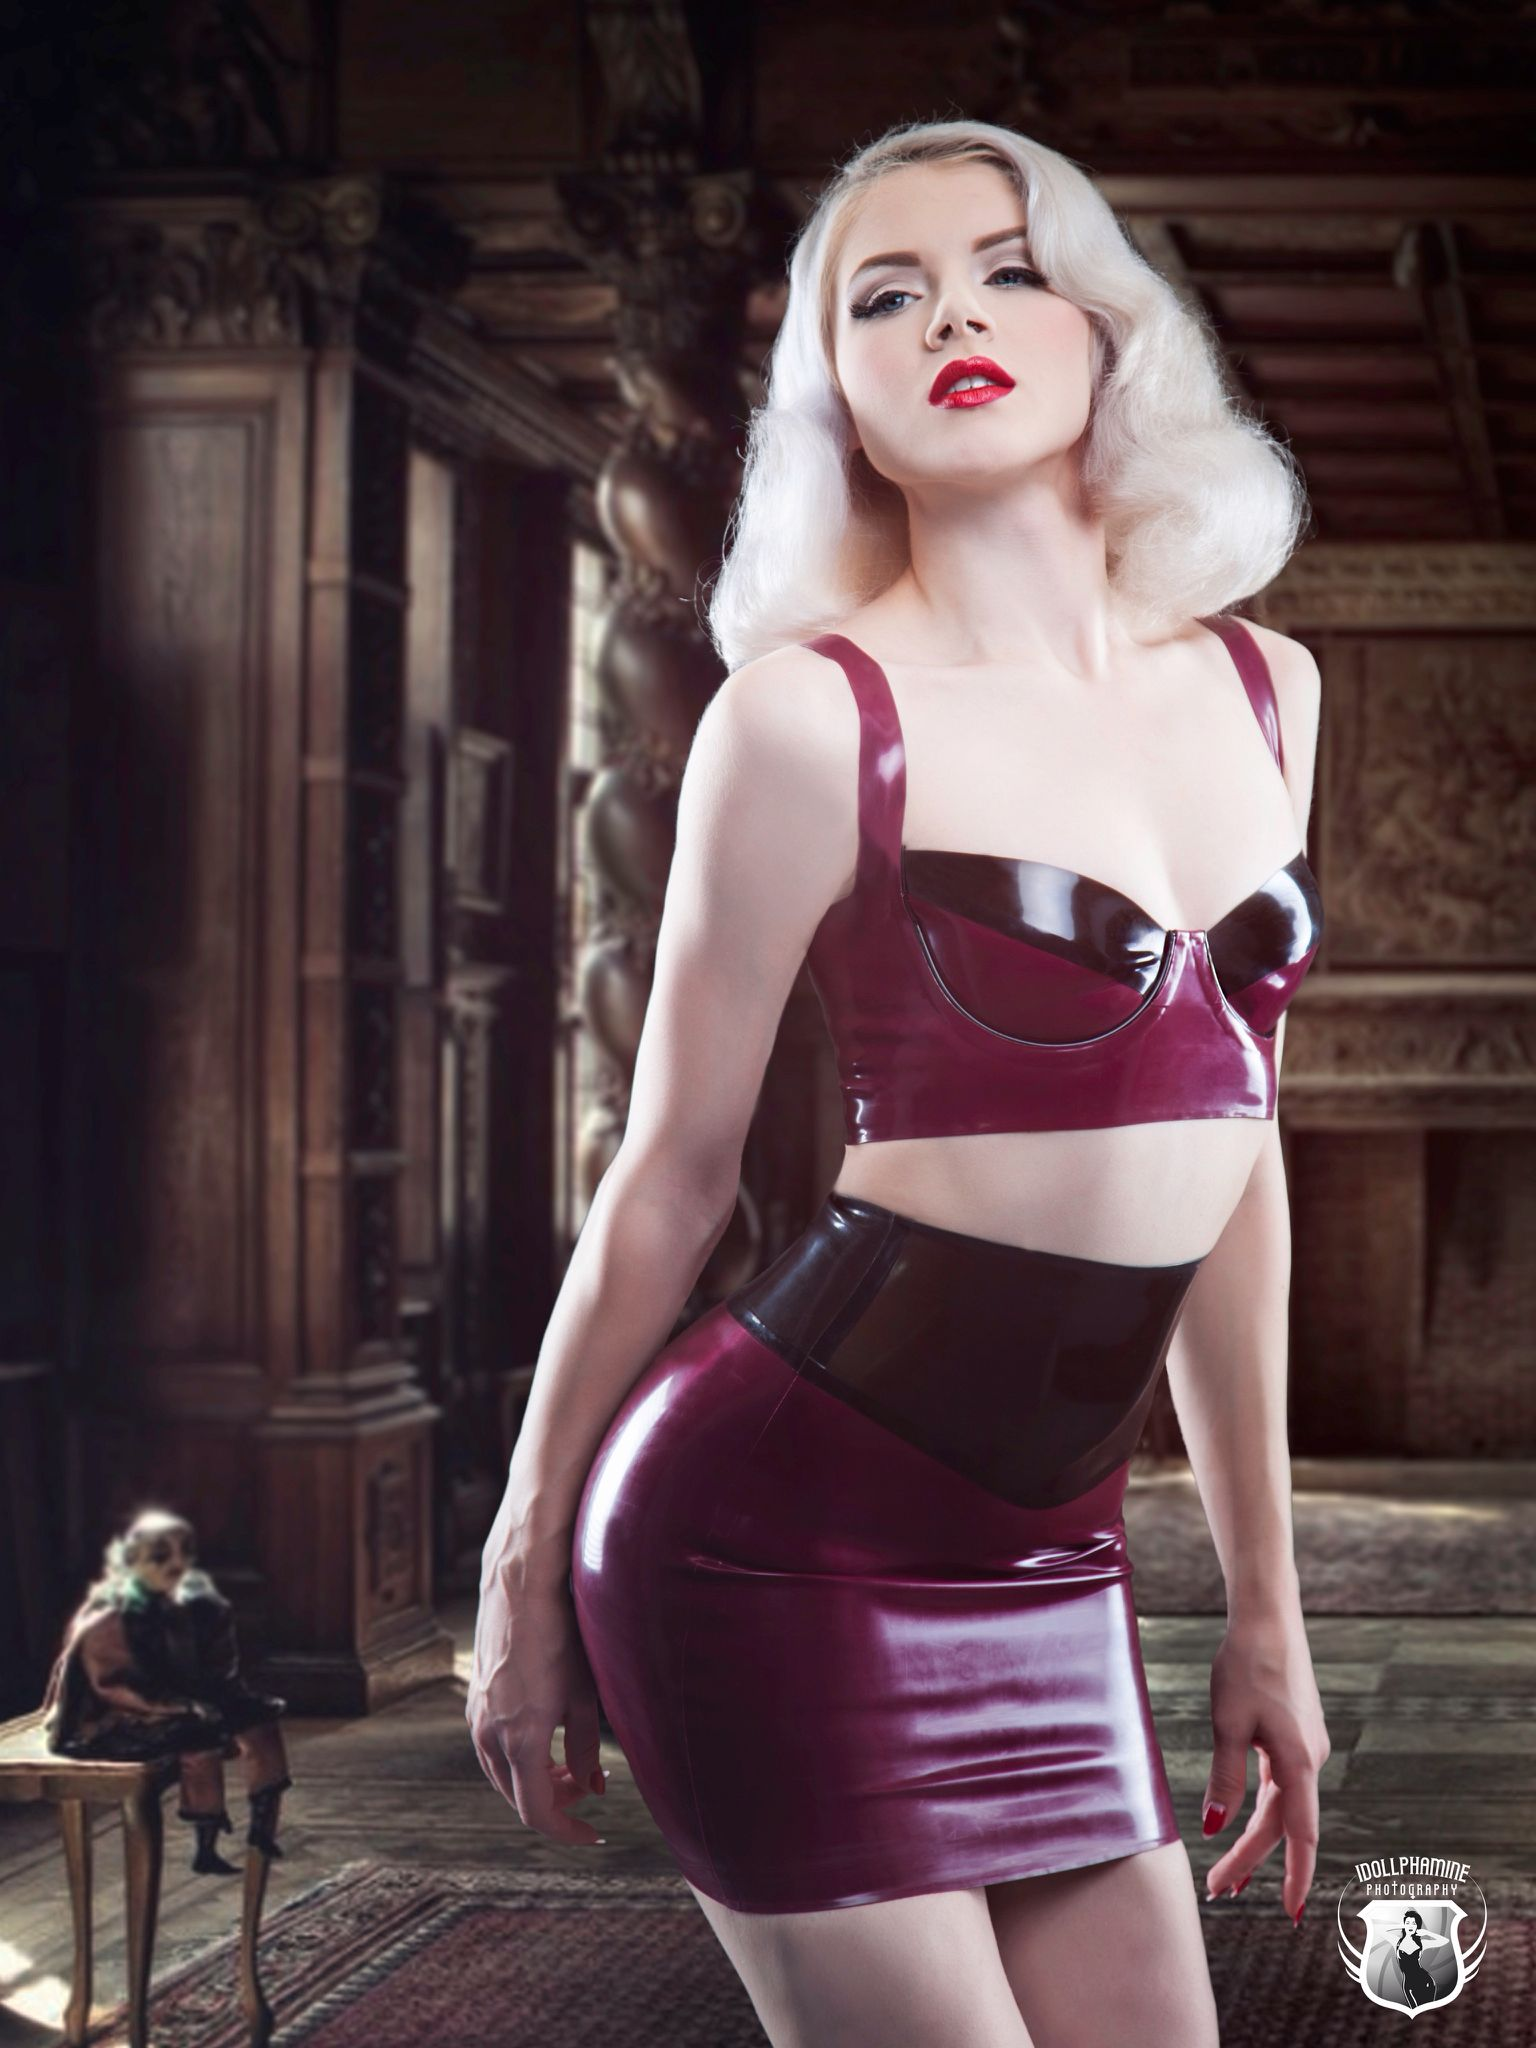 aa2d4360ec Another stunning miss mosh shot by idollphamine - wearing mico couture latex  and shot in Hollywood USA by idollphamine